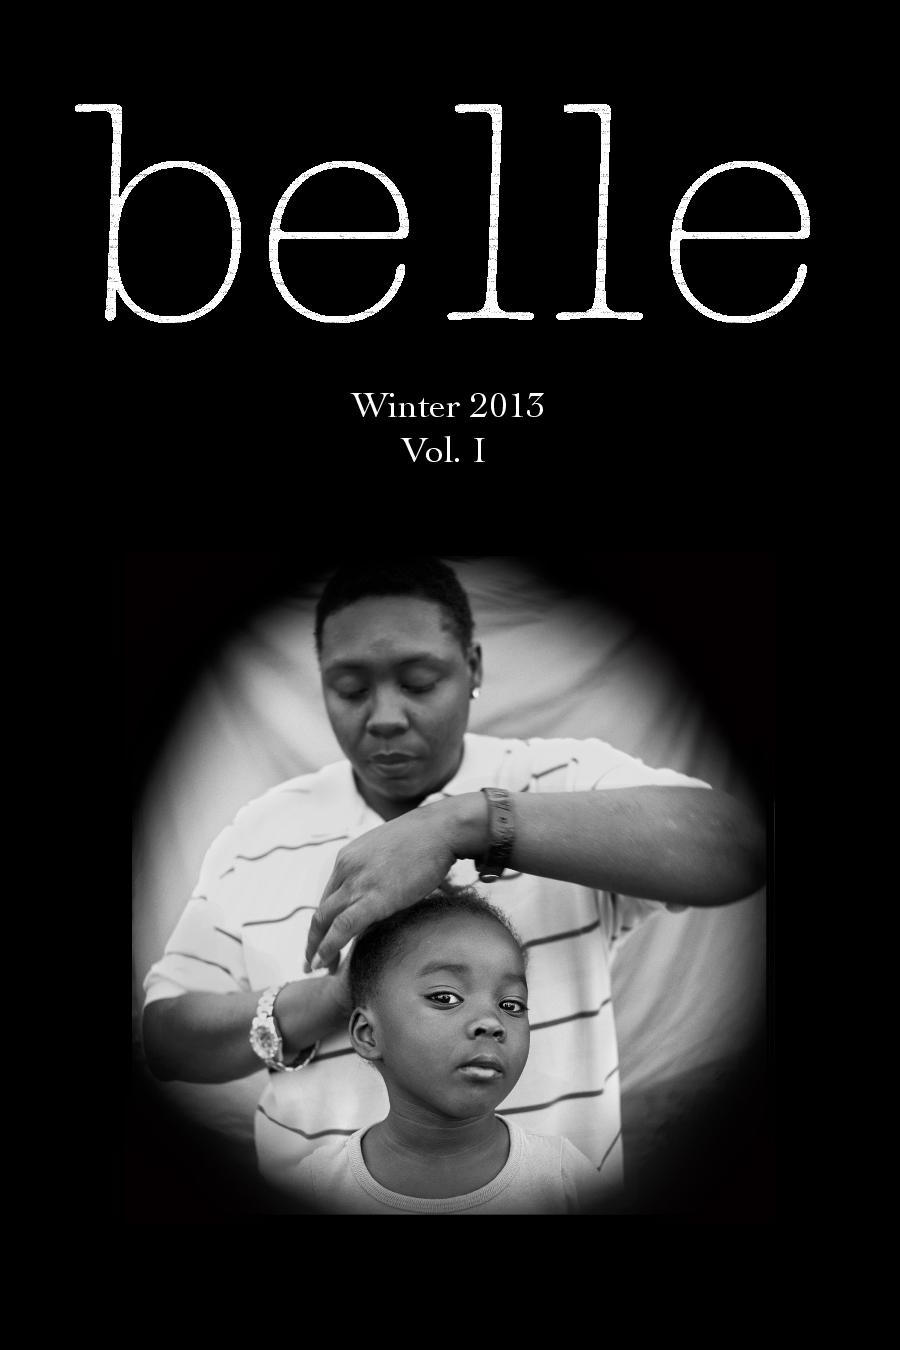 Belle Journal: Vol. I Cover